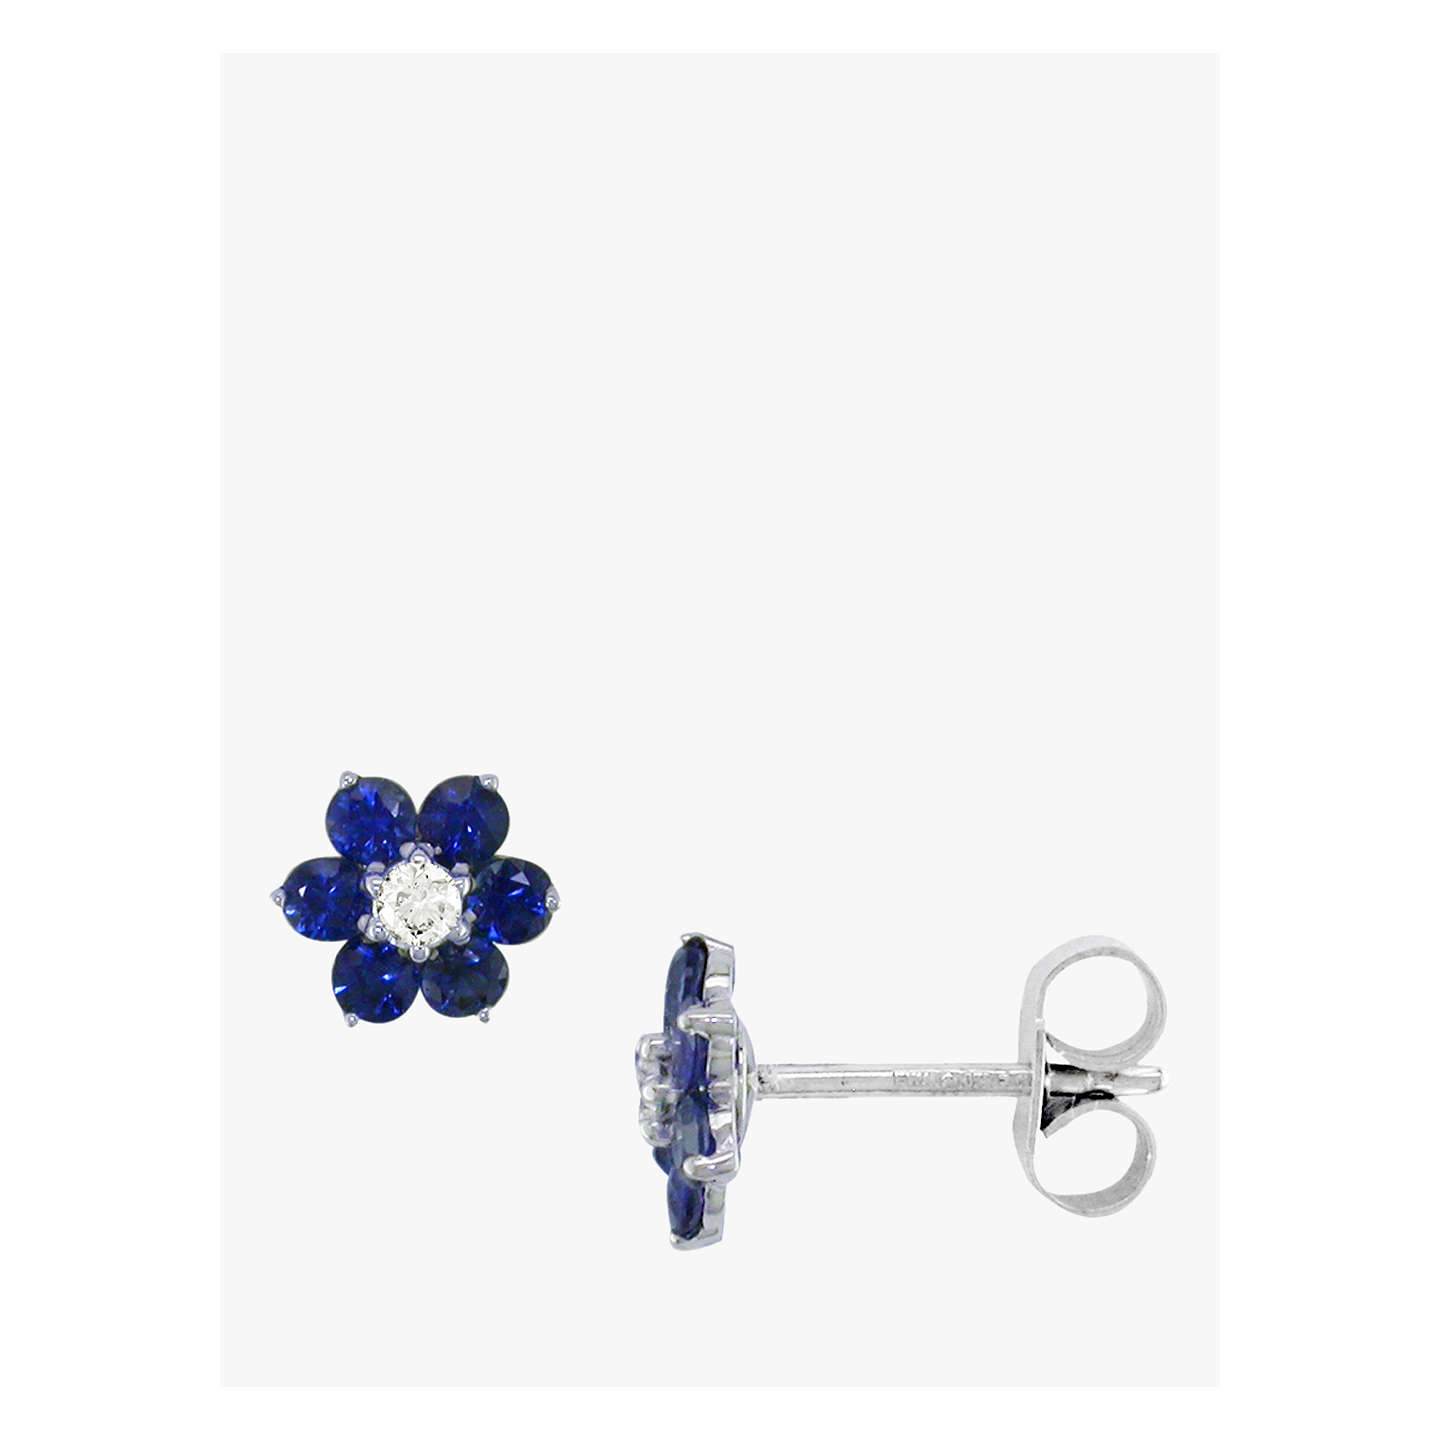 stud rsp lewis online johnlewis at main silver john earrings flower com buyhot big diamonds hot sterling pdp